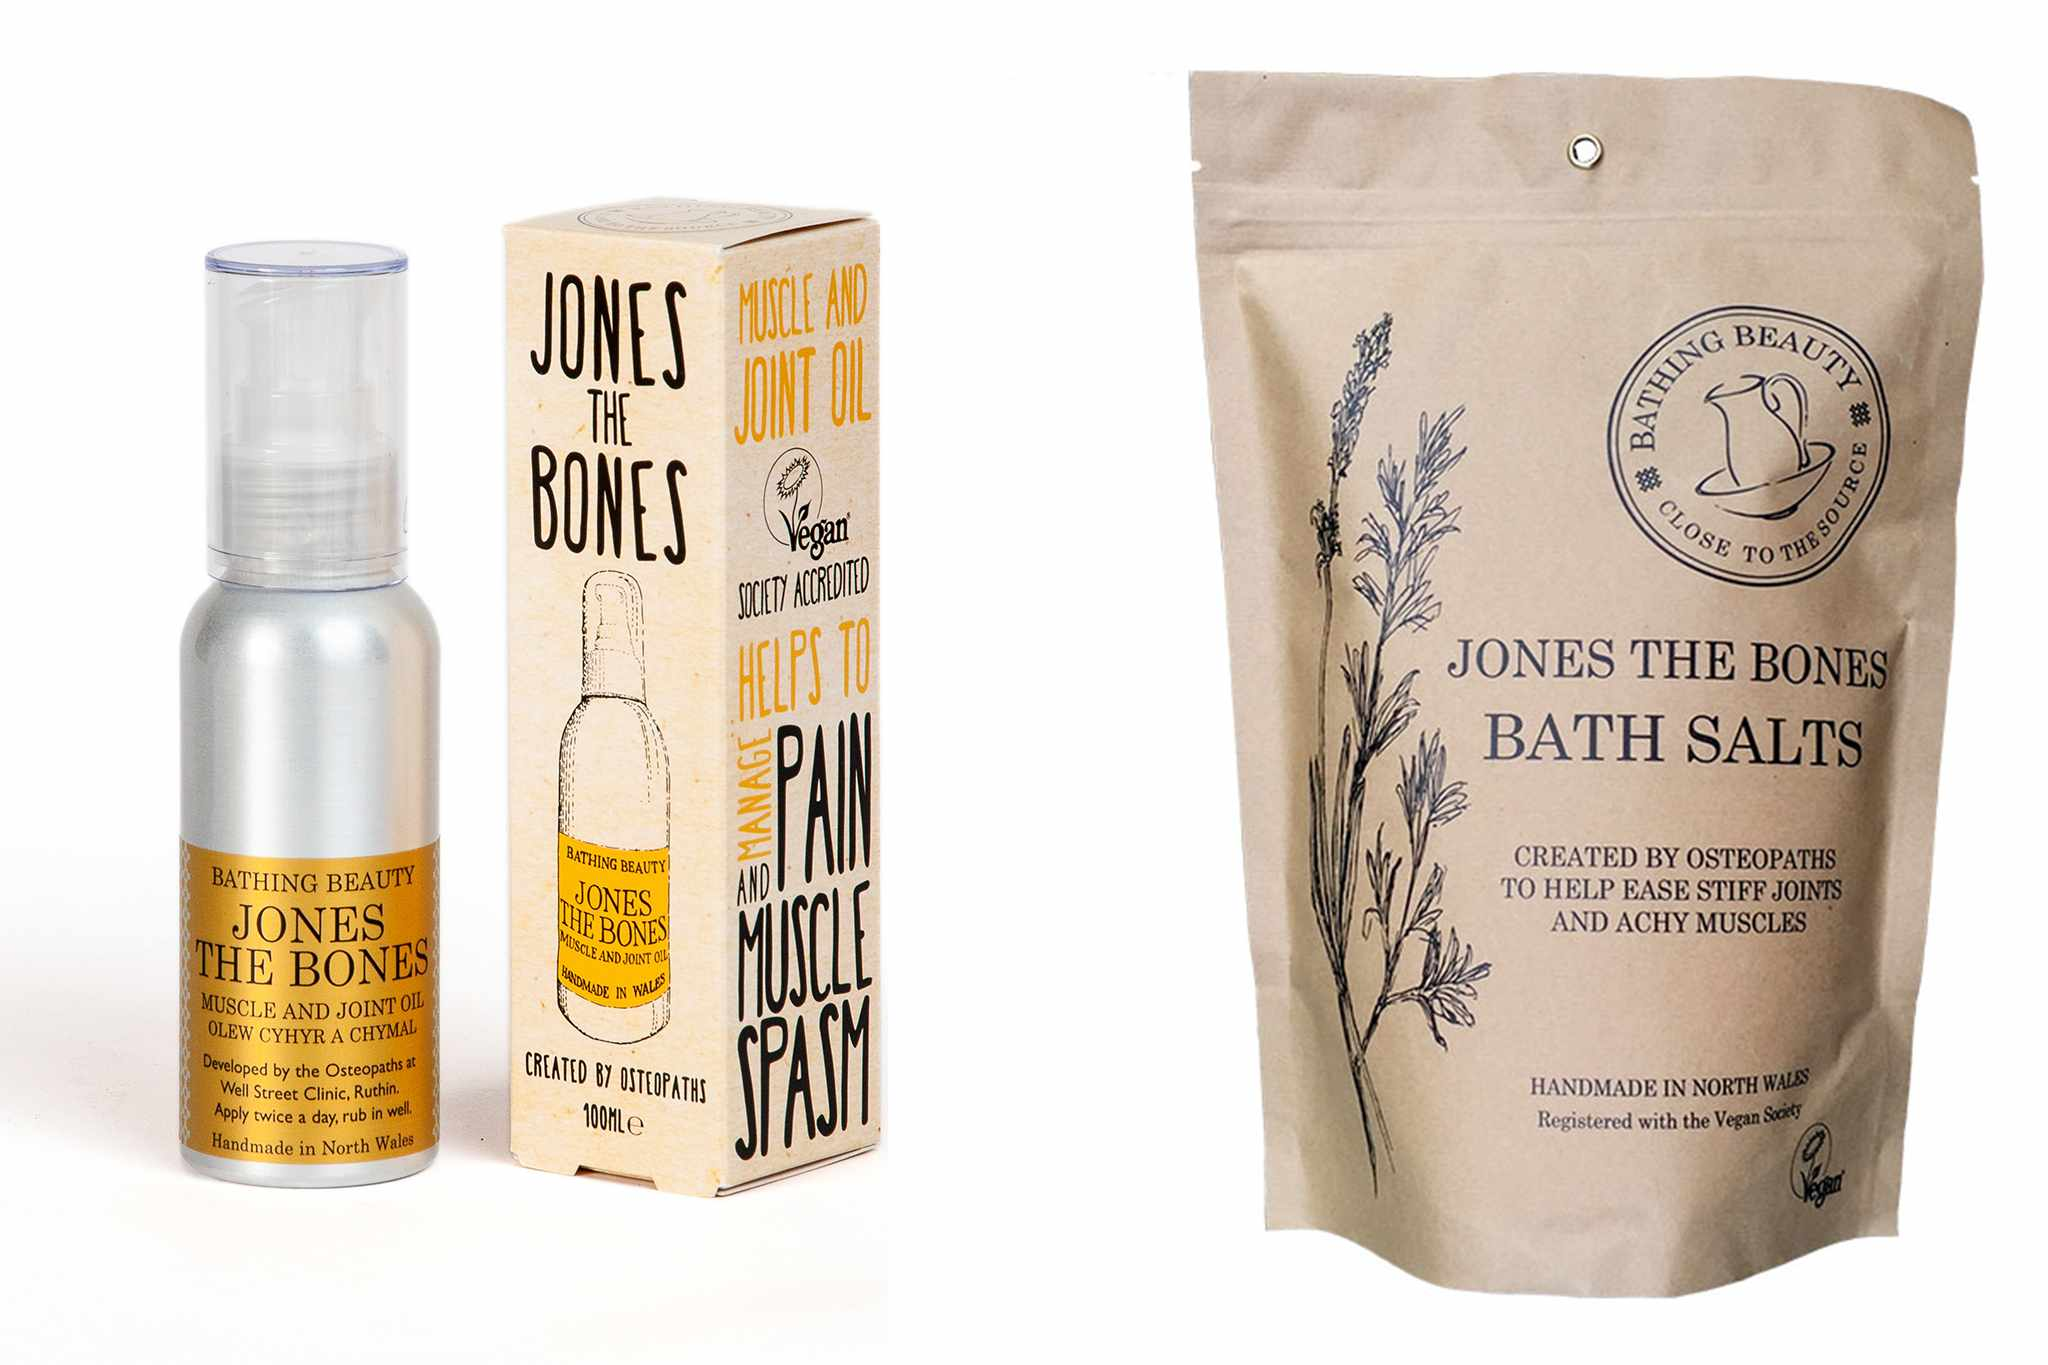 Natural remedies for bones and muscles from Bathing Beauty